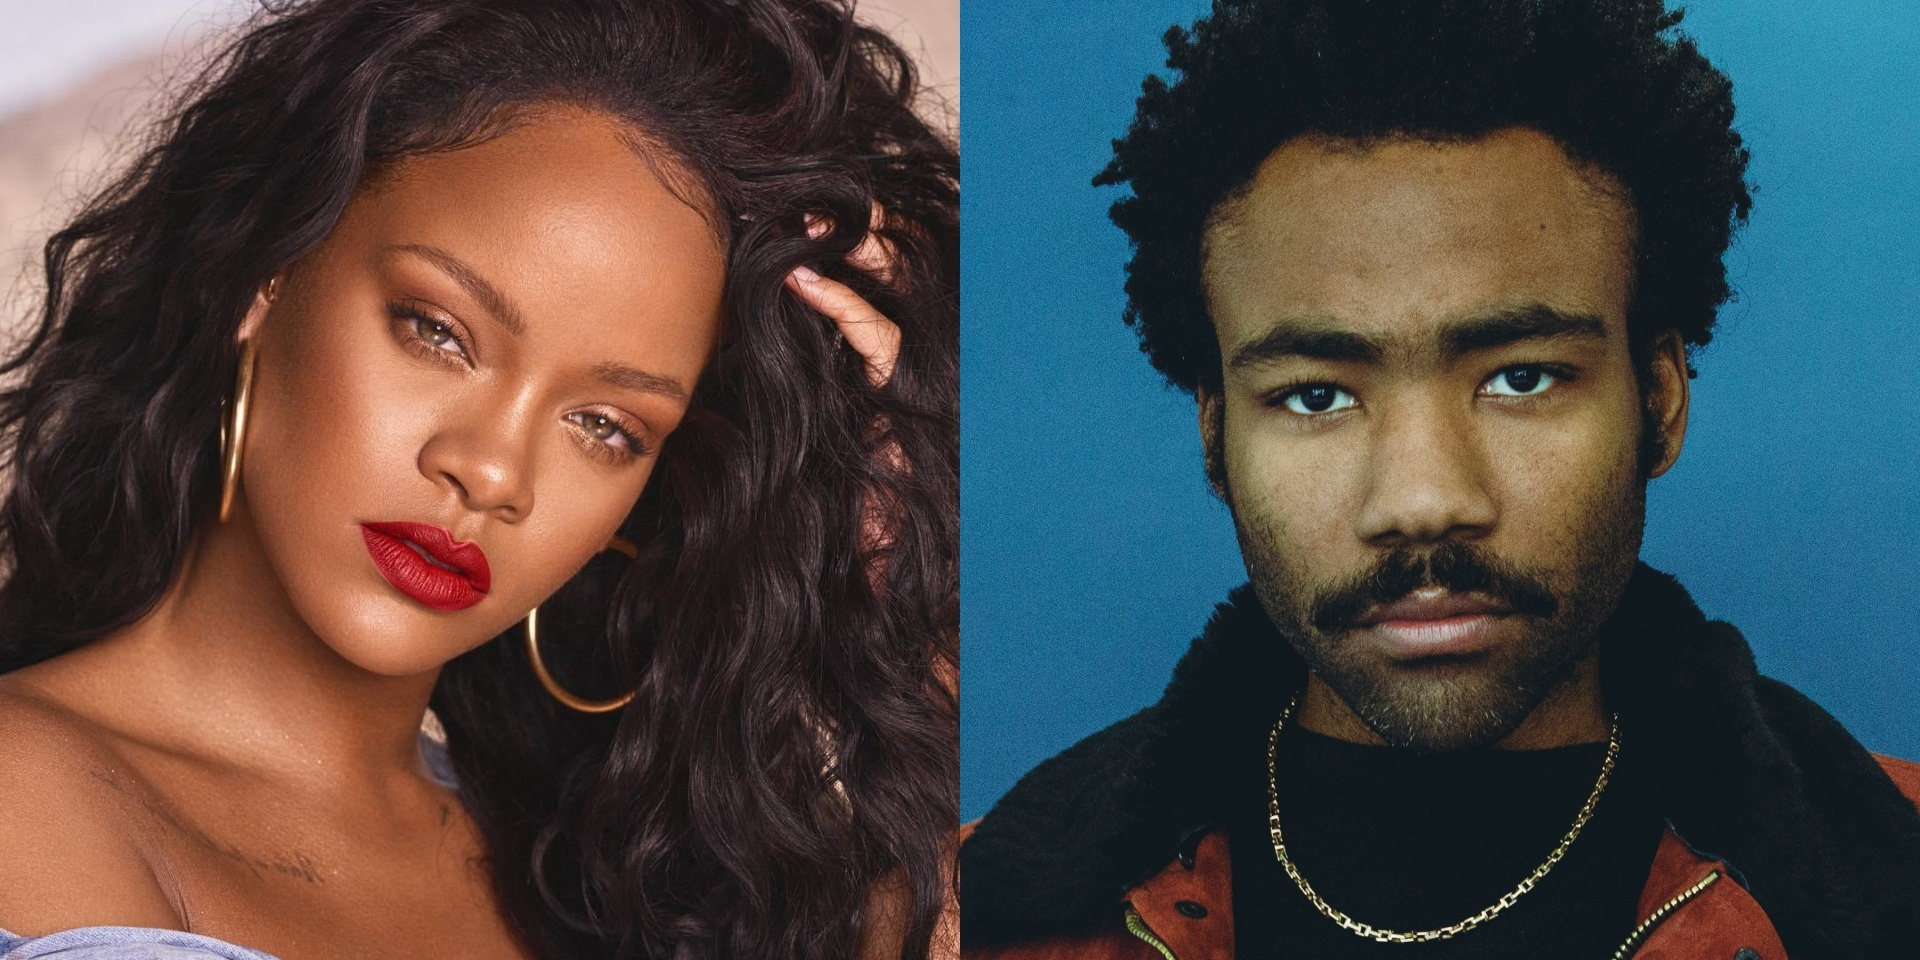 Rihanna and Donald Glover to star in new movie, Guava Island